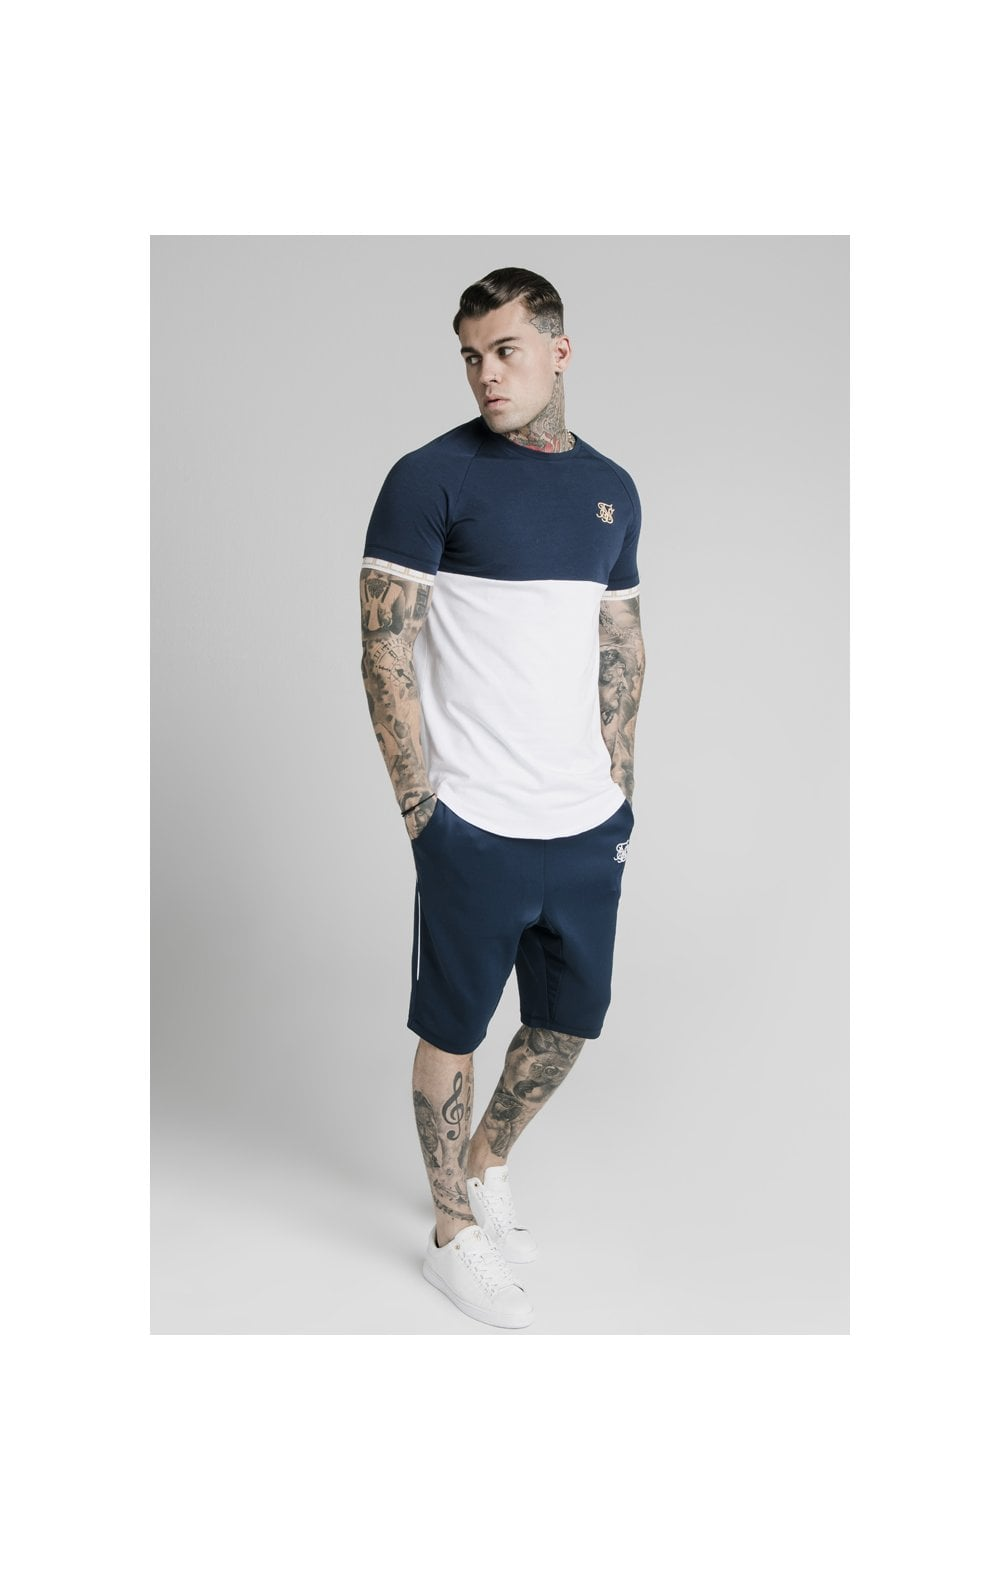 SikSilk S/S Cut & Sew Tech Tee - Navy & White (2)